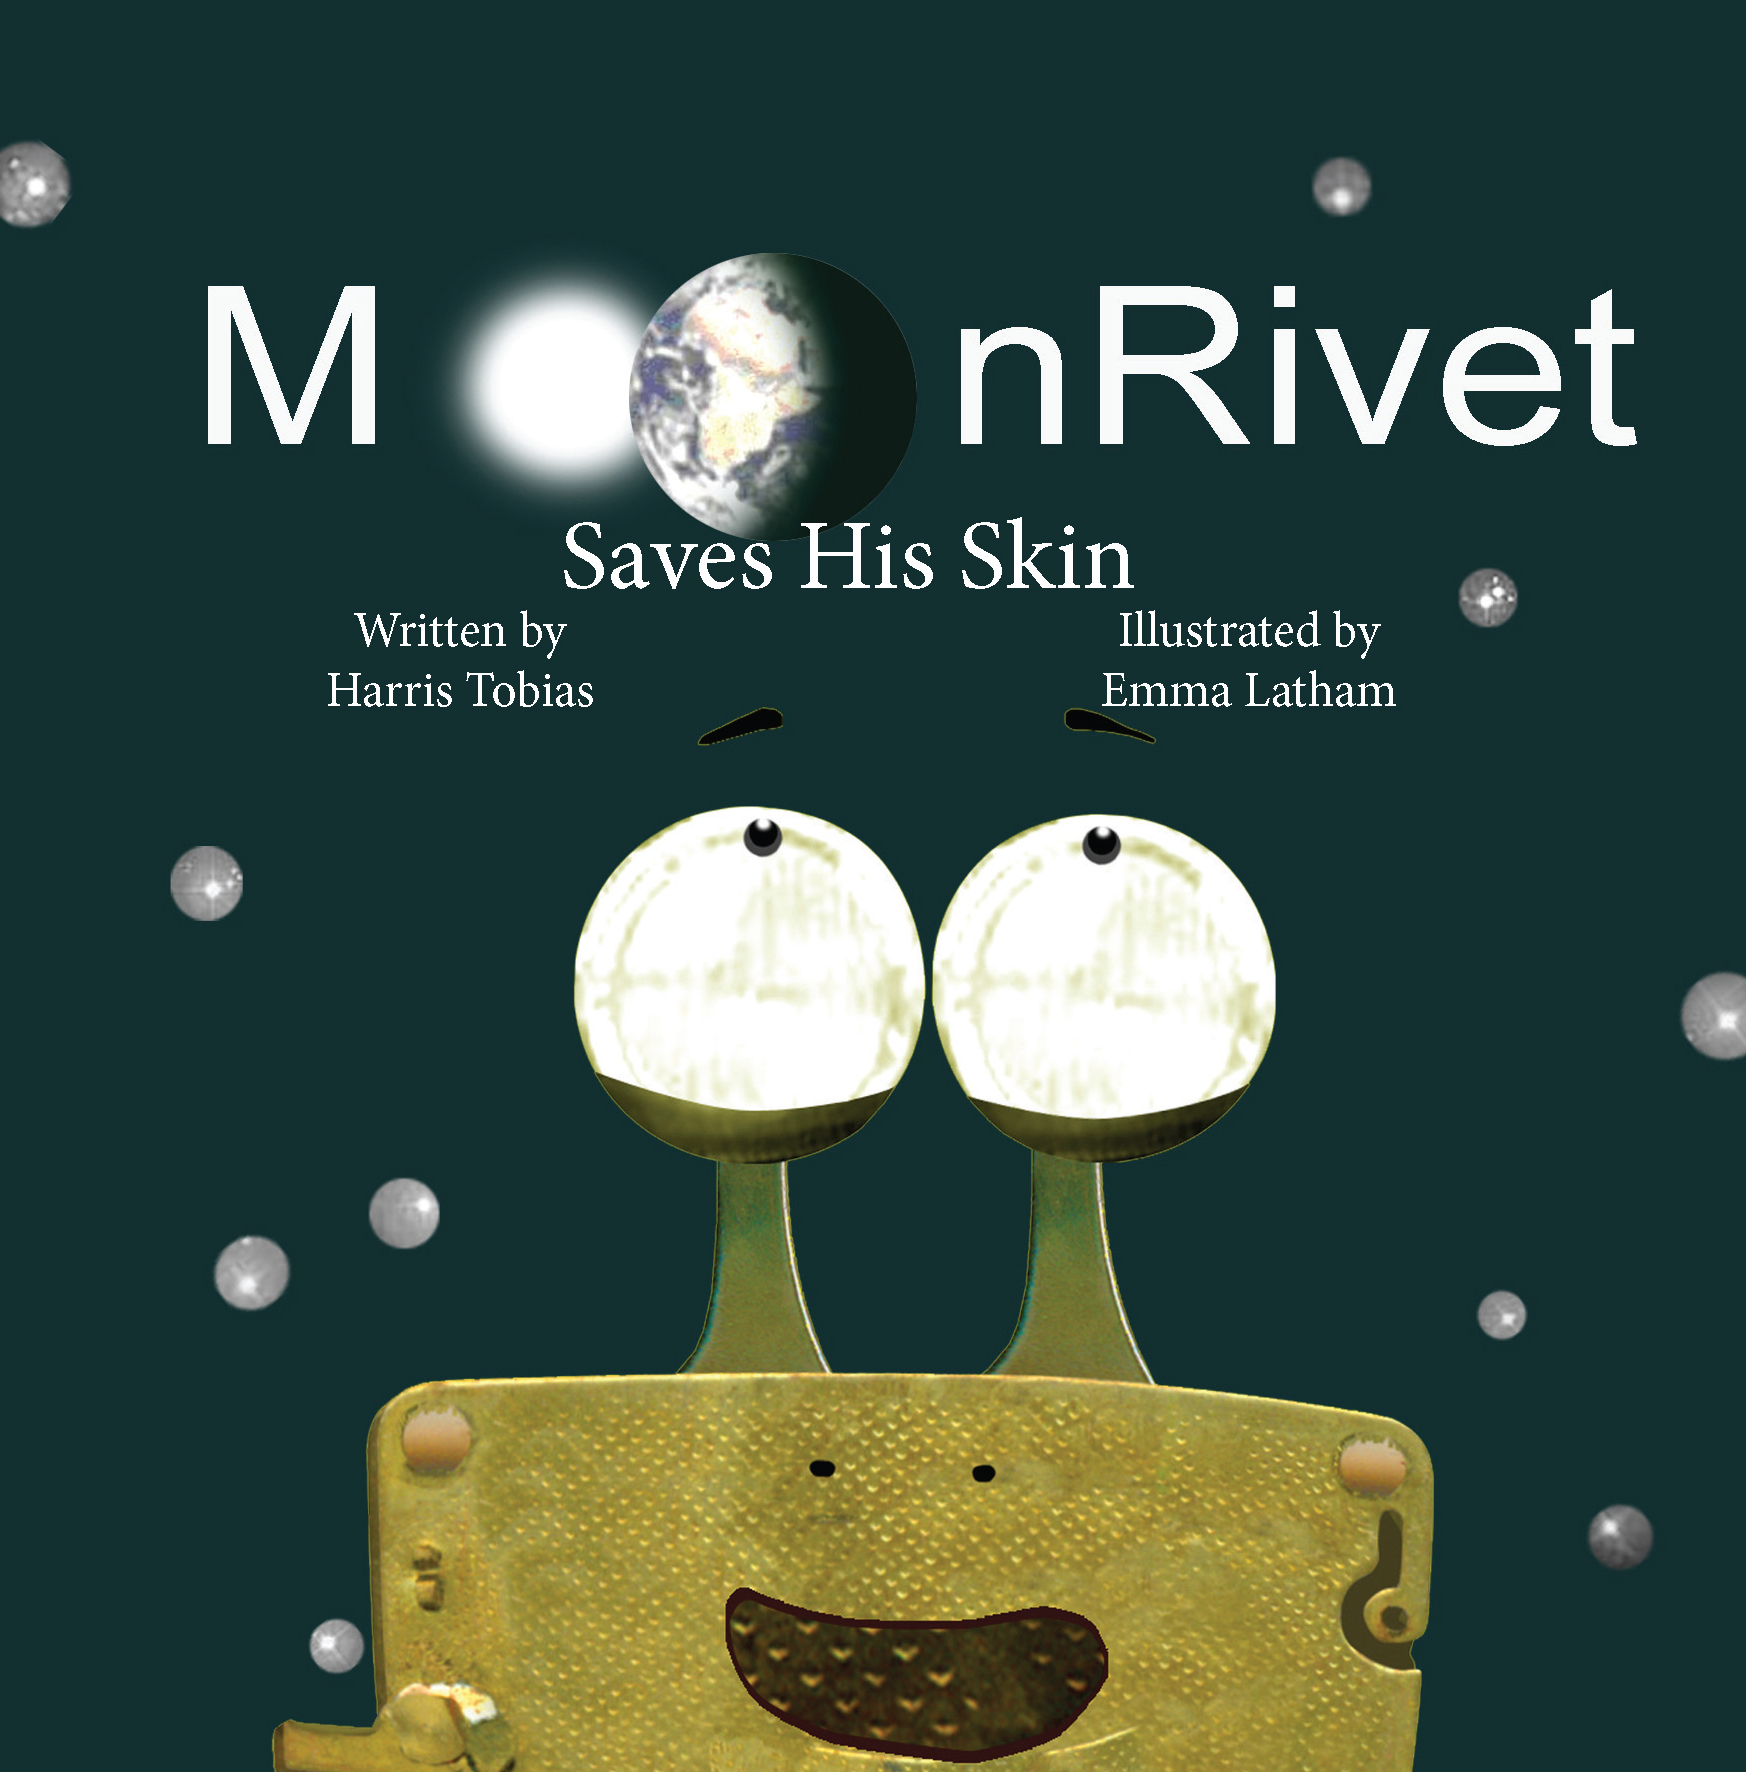 MoonRivet Saves His Skin